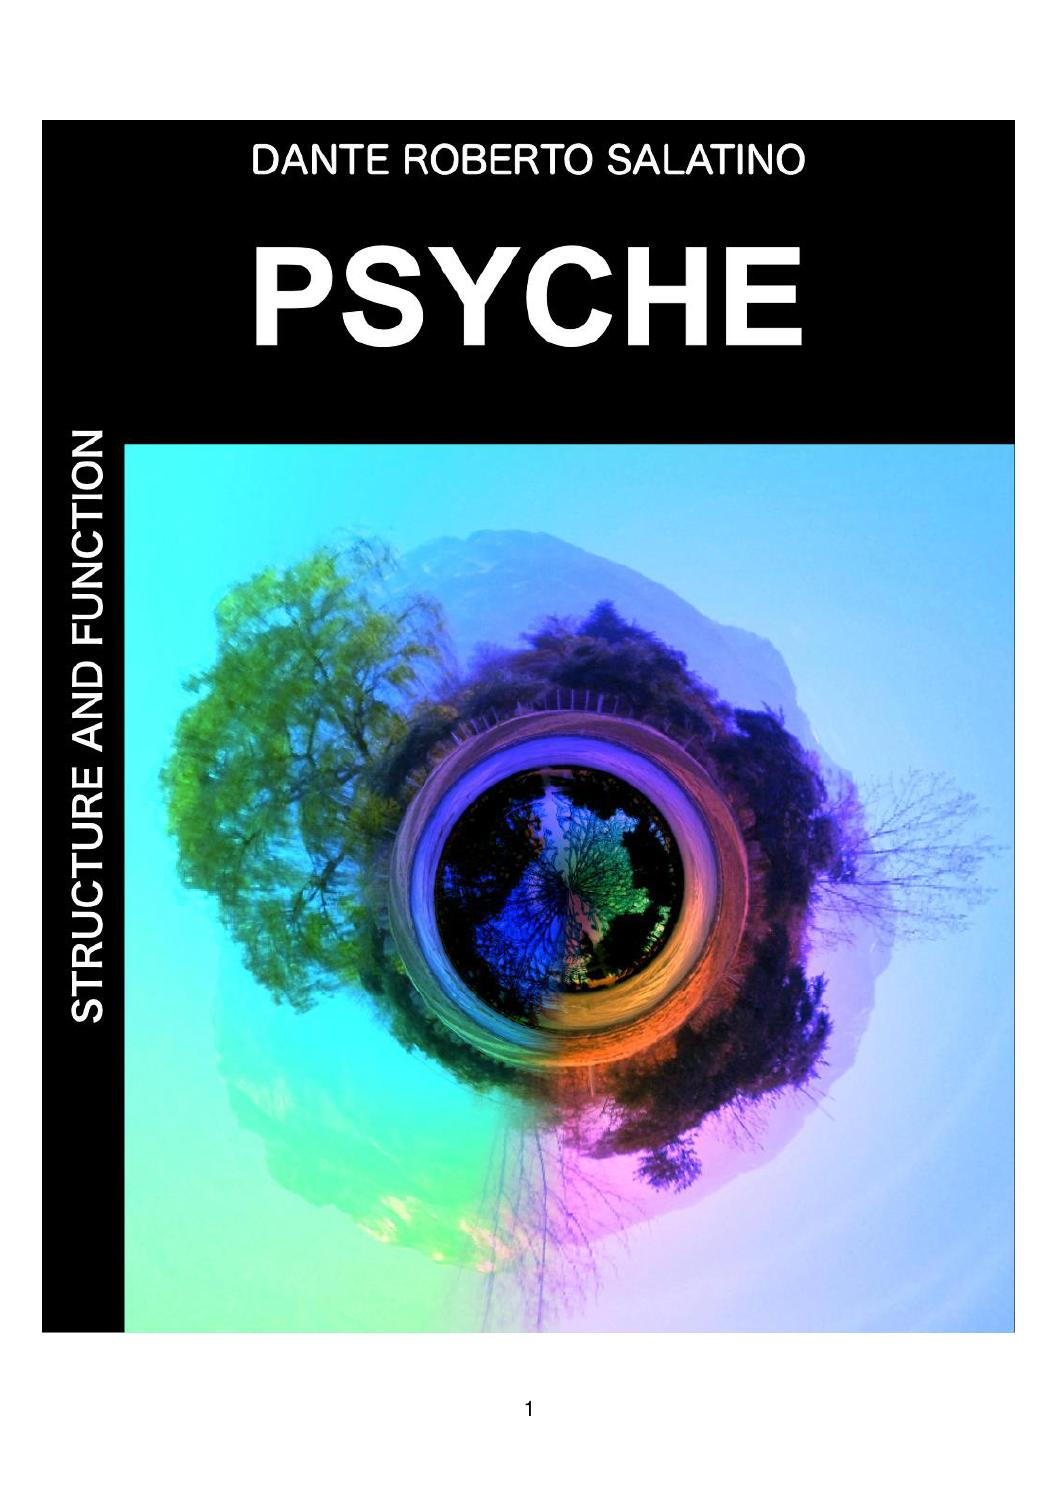 PSYCHE Structure and Function by Dante Salatino issuu